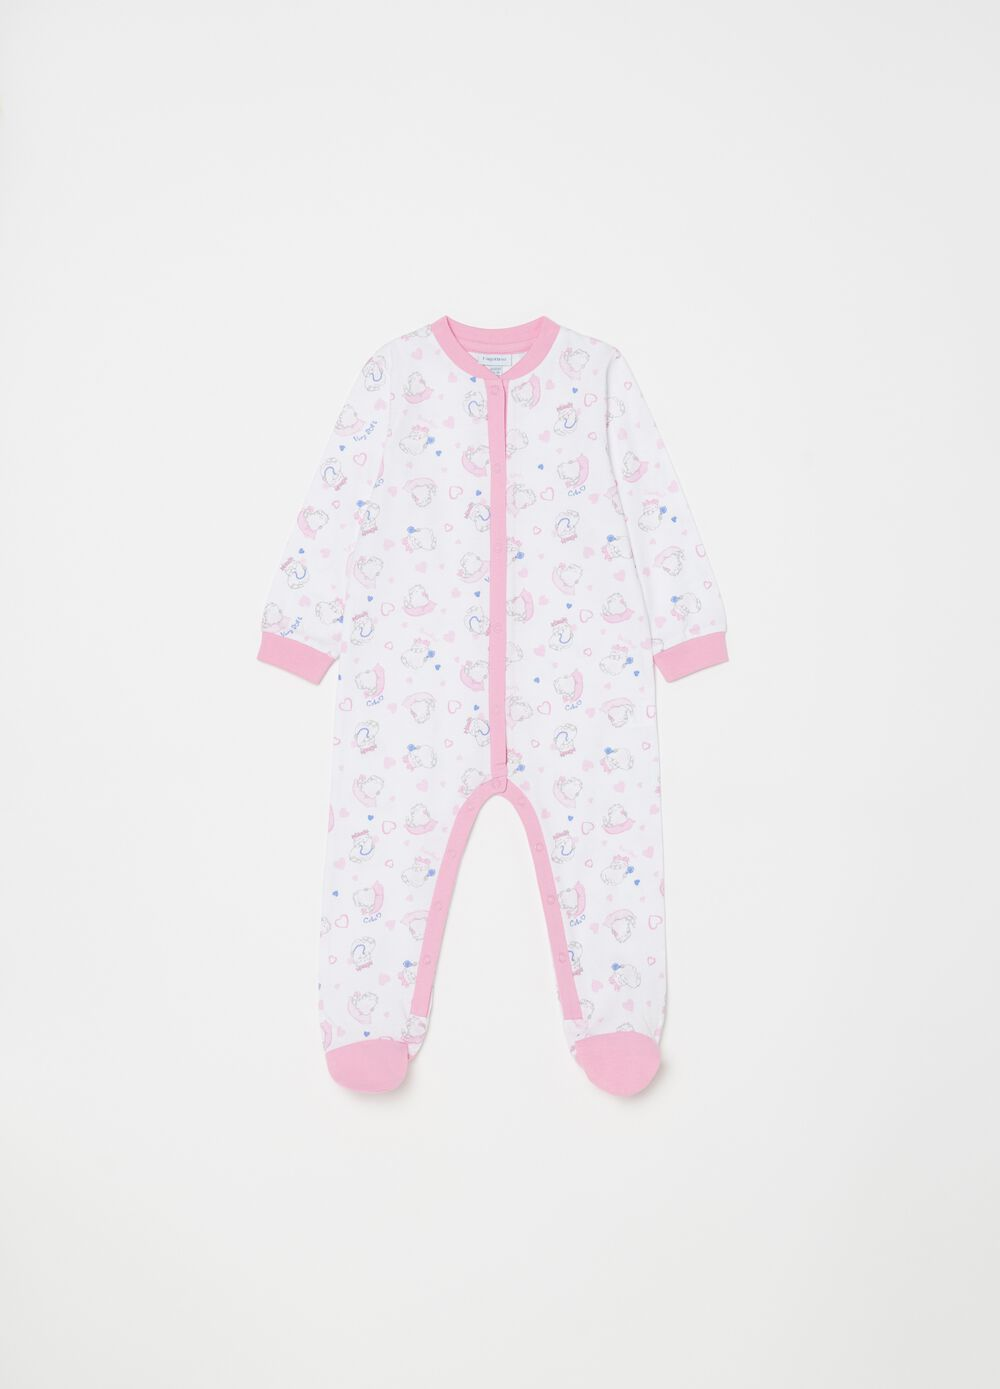 Sleepsuit with kitten and hearts pattern